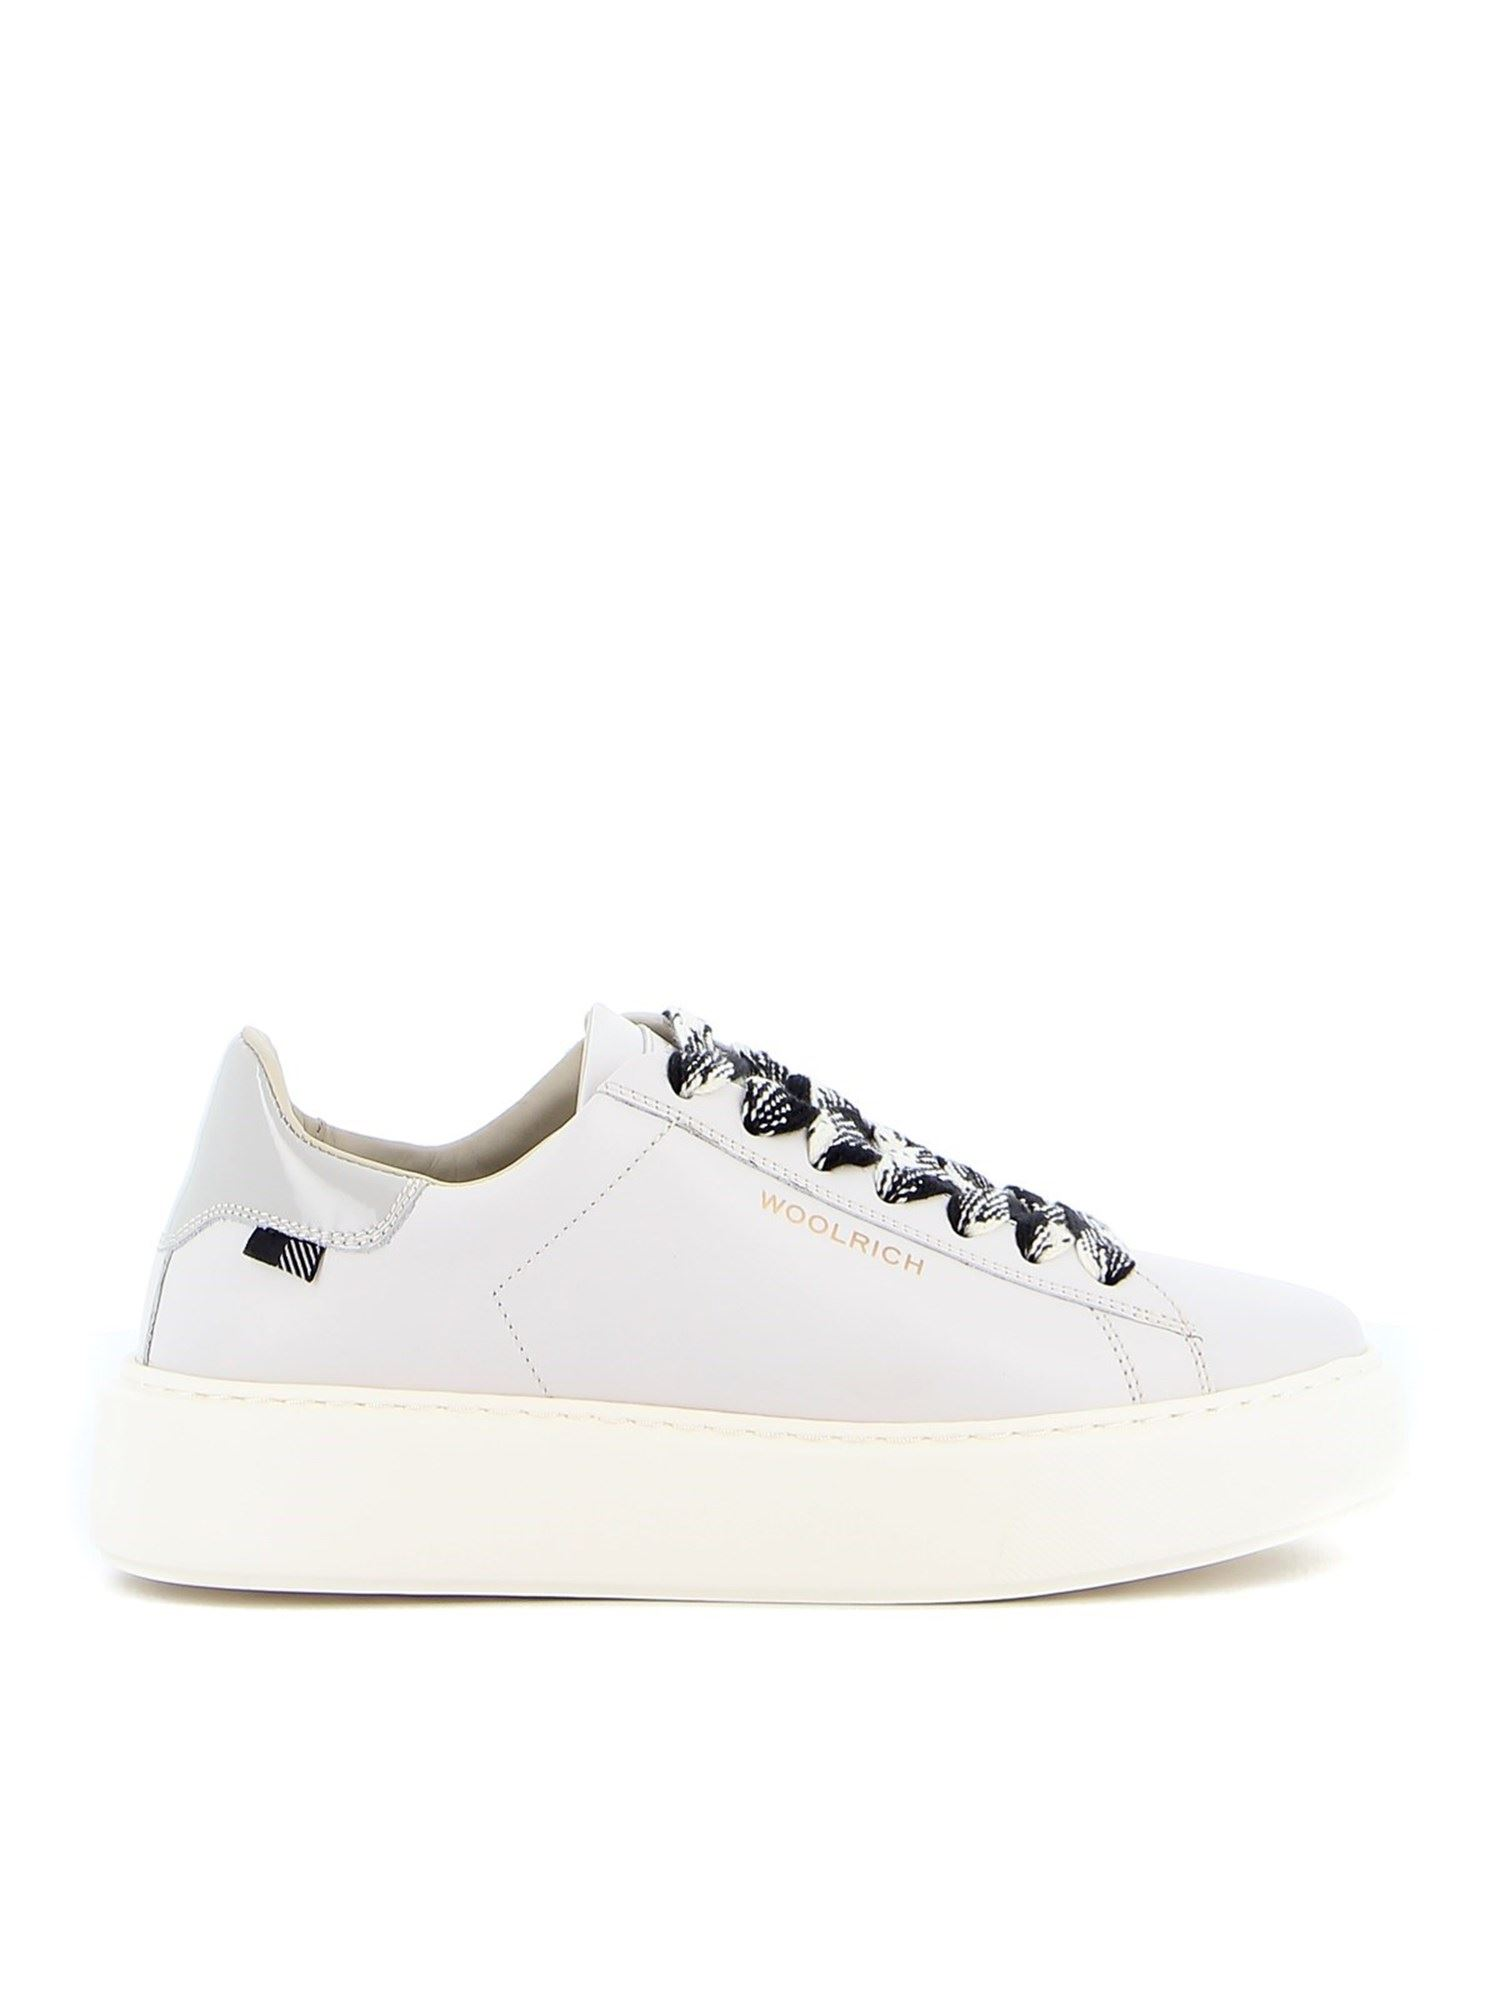 Woolrich LEATHER SNEAKERS IN WHITE